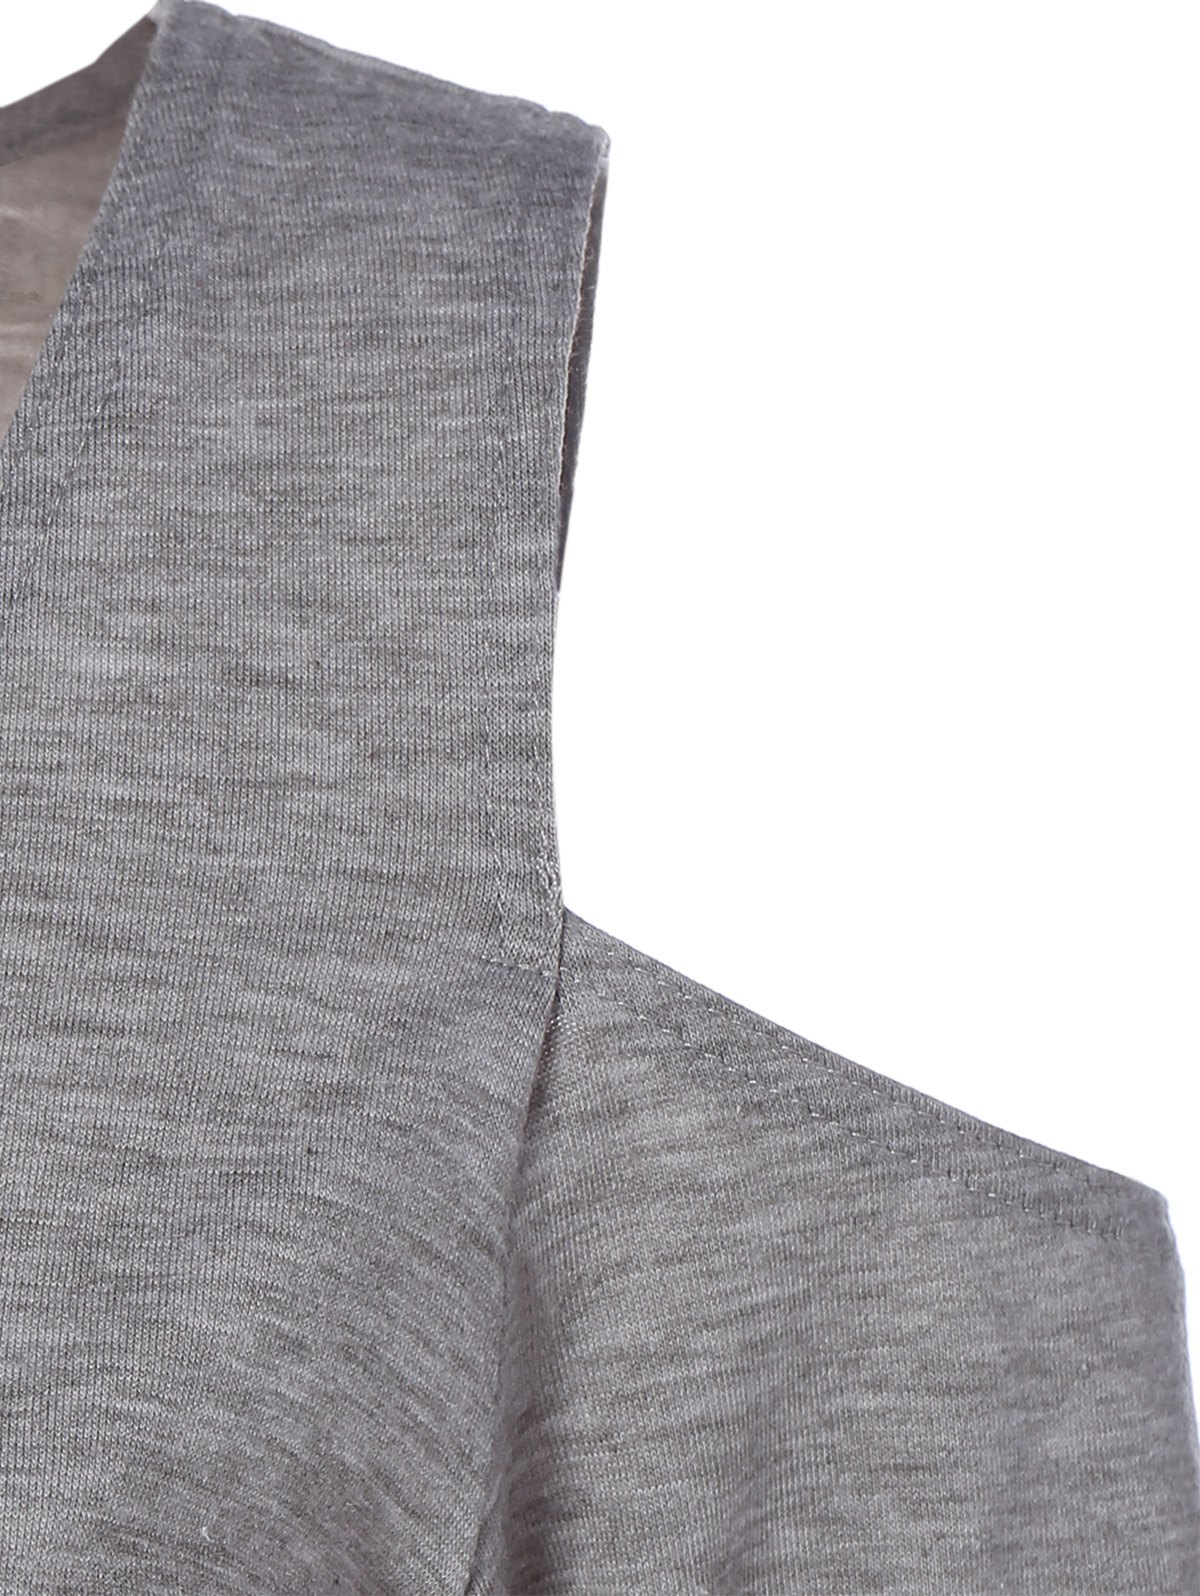 Low Cut Cold Shoulder Tee - LIGHT GRAY 3XL